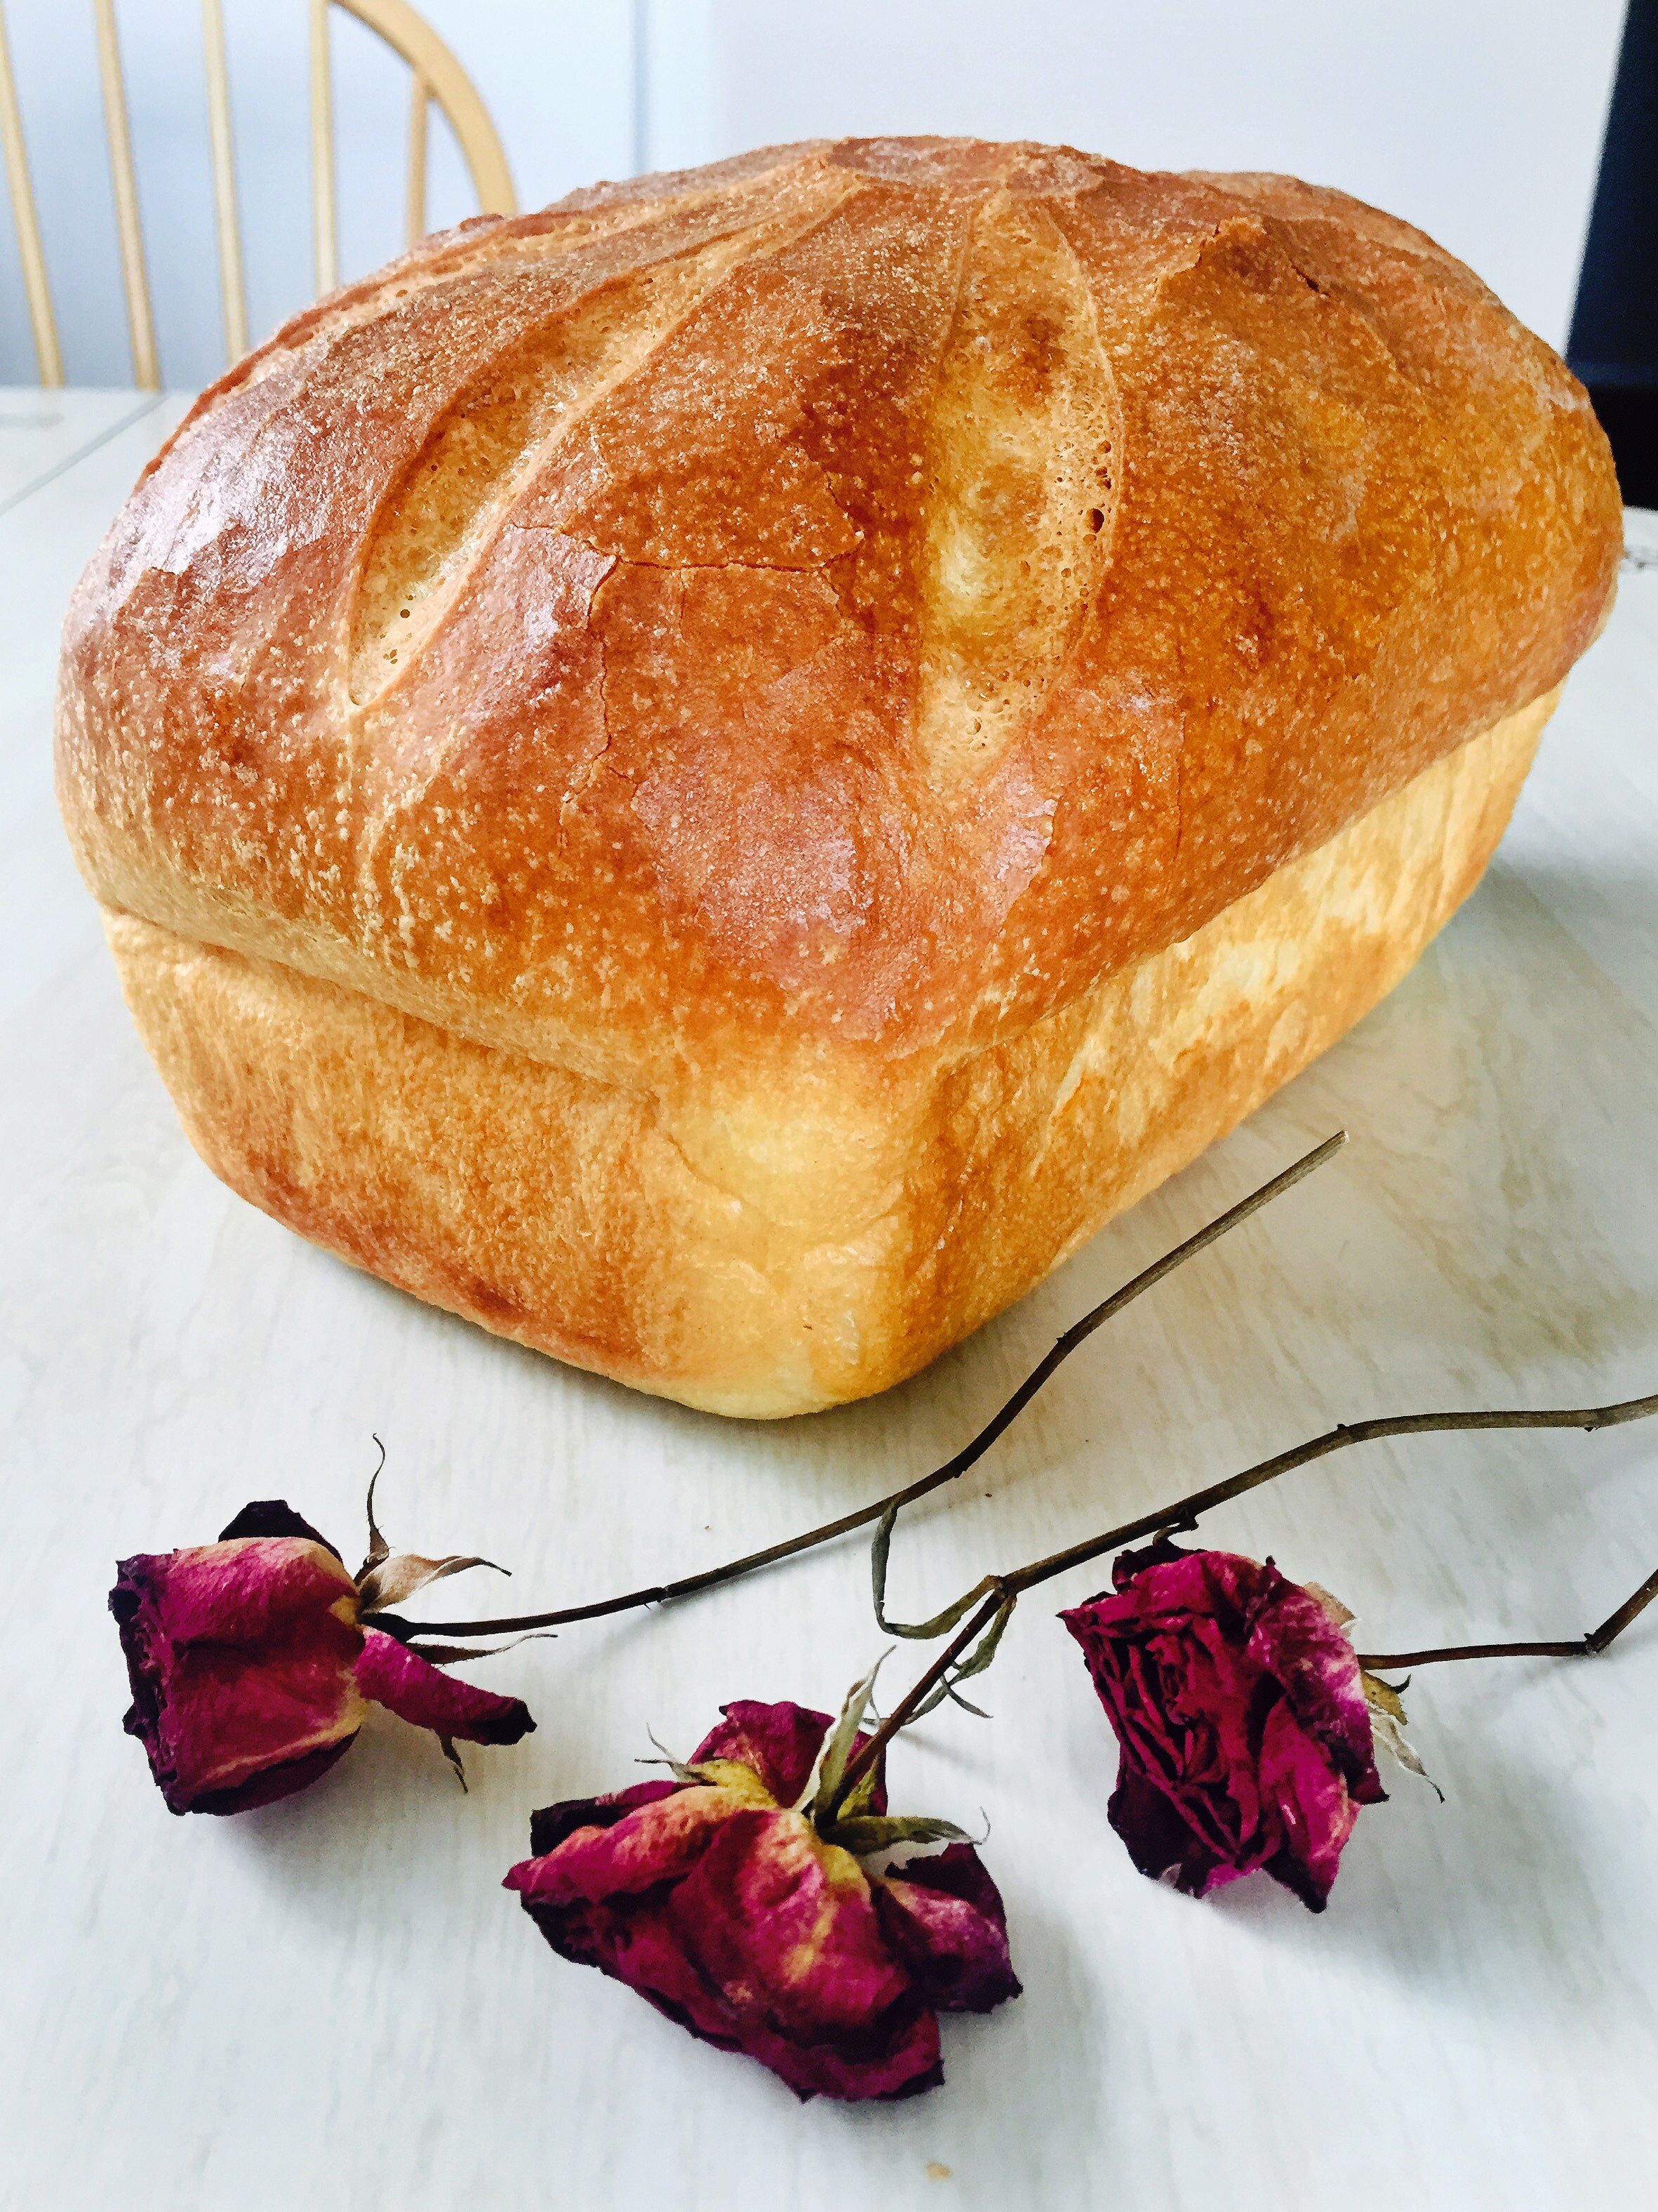 The Wholesome Loaf is a bread recipe celebrating the full moon in June by the Full Moon Baking Club.